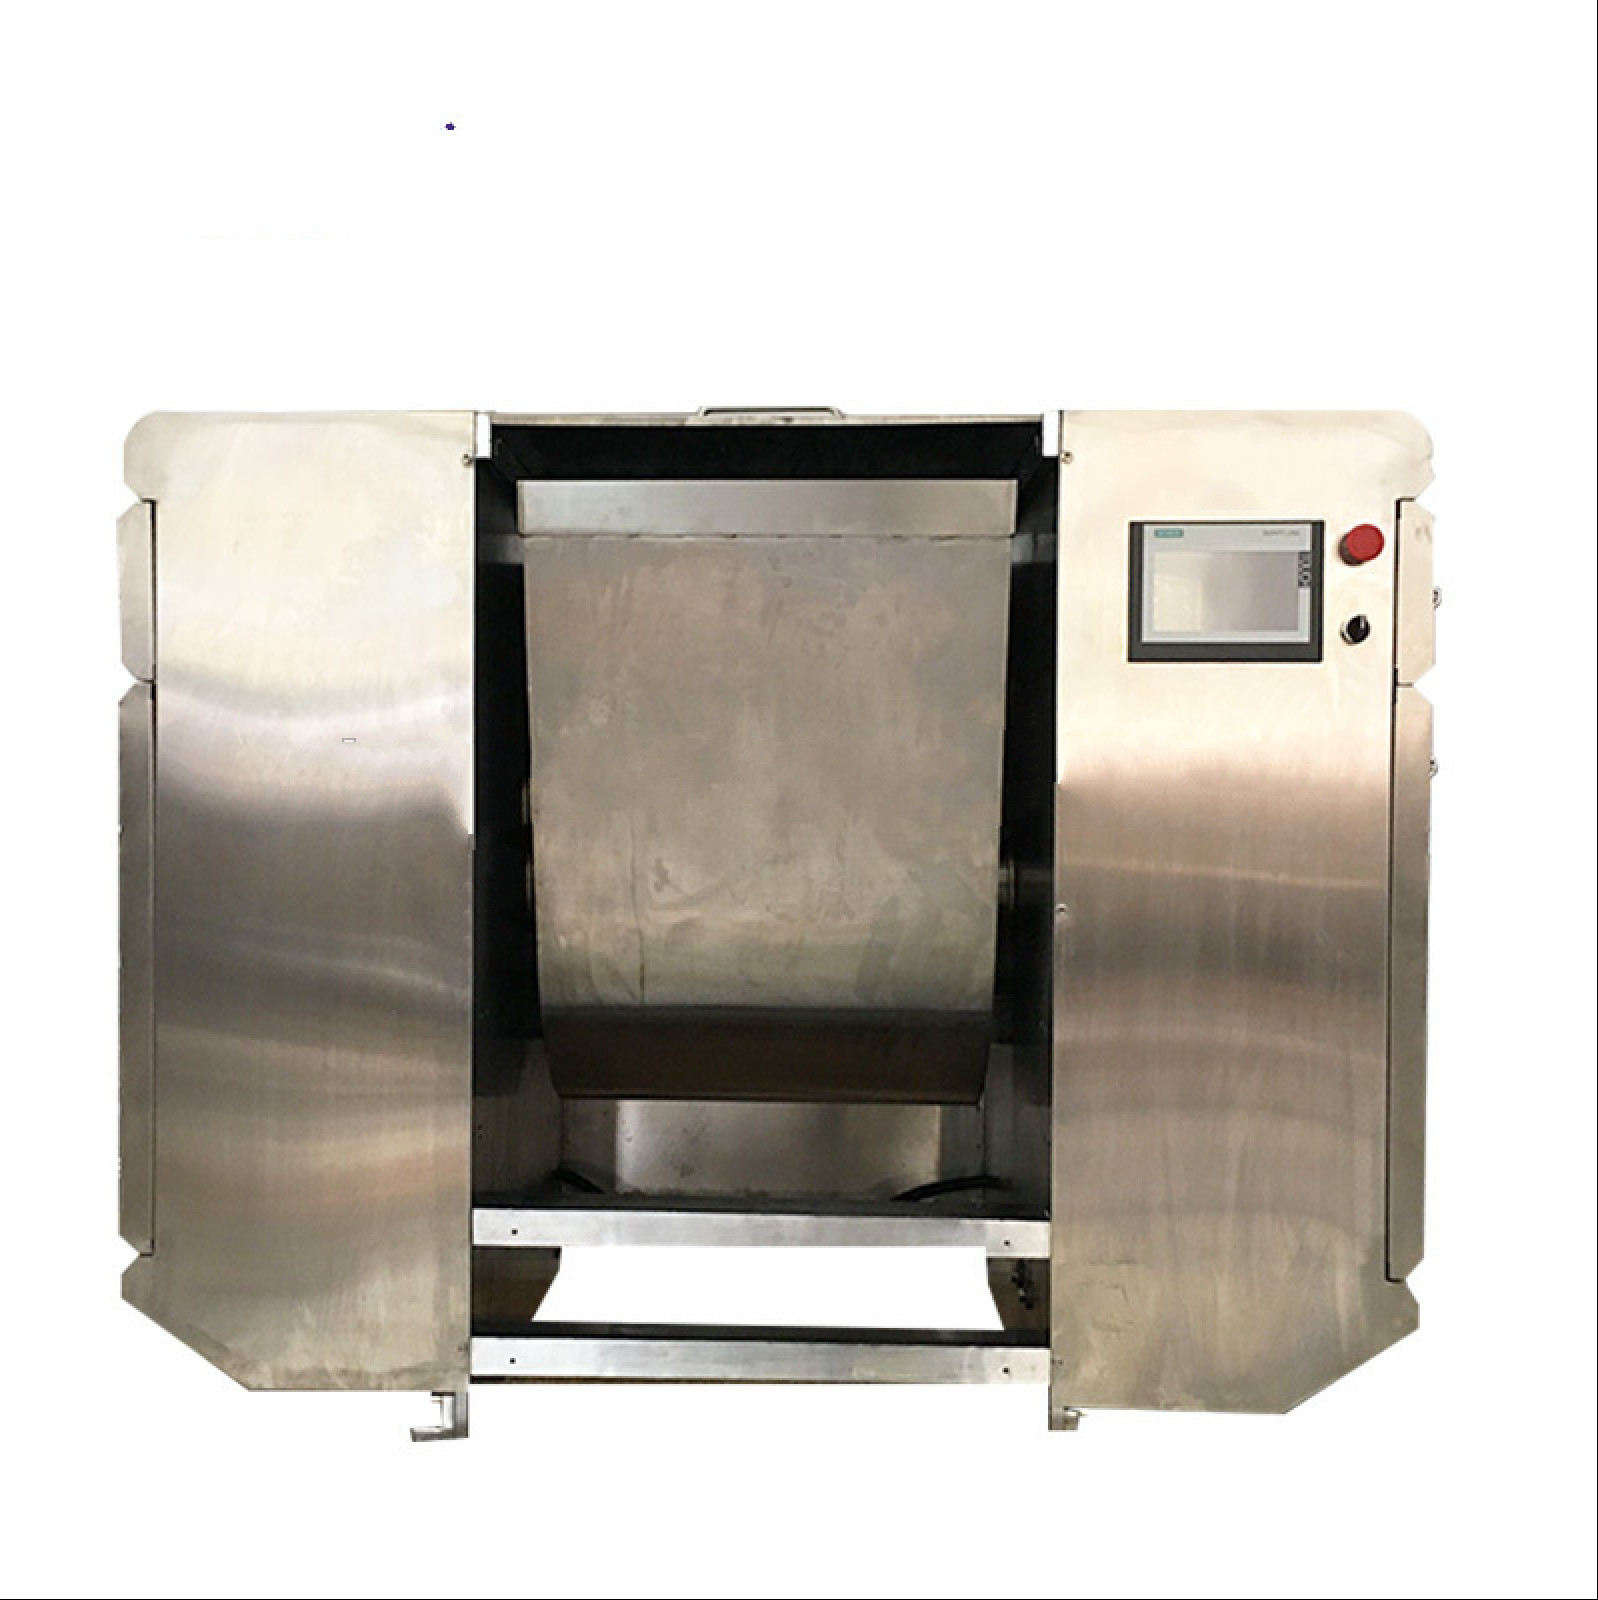 209 holes manual capsule filling machine capsule filler|ys